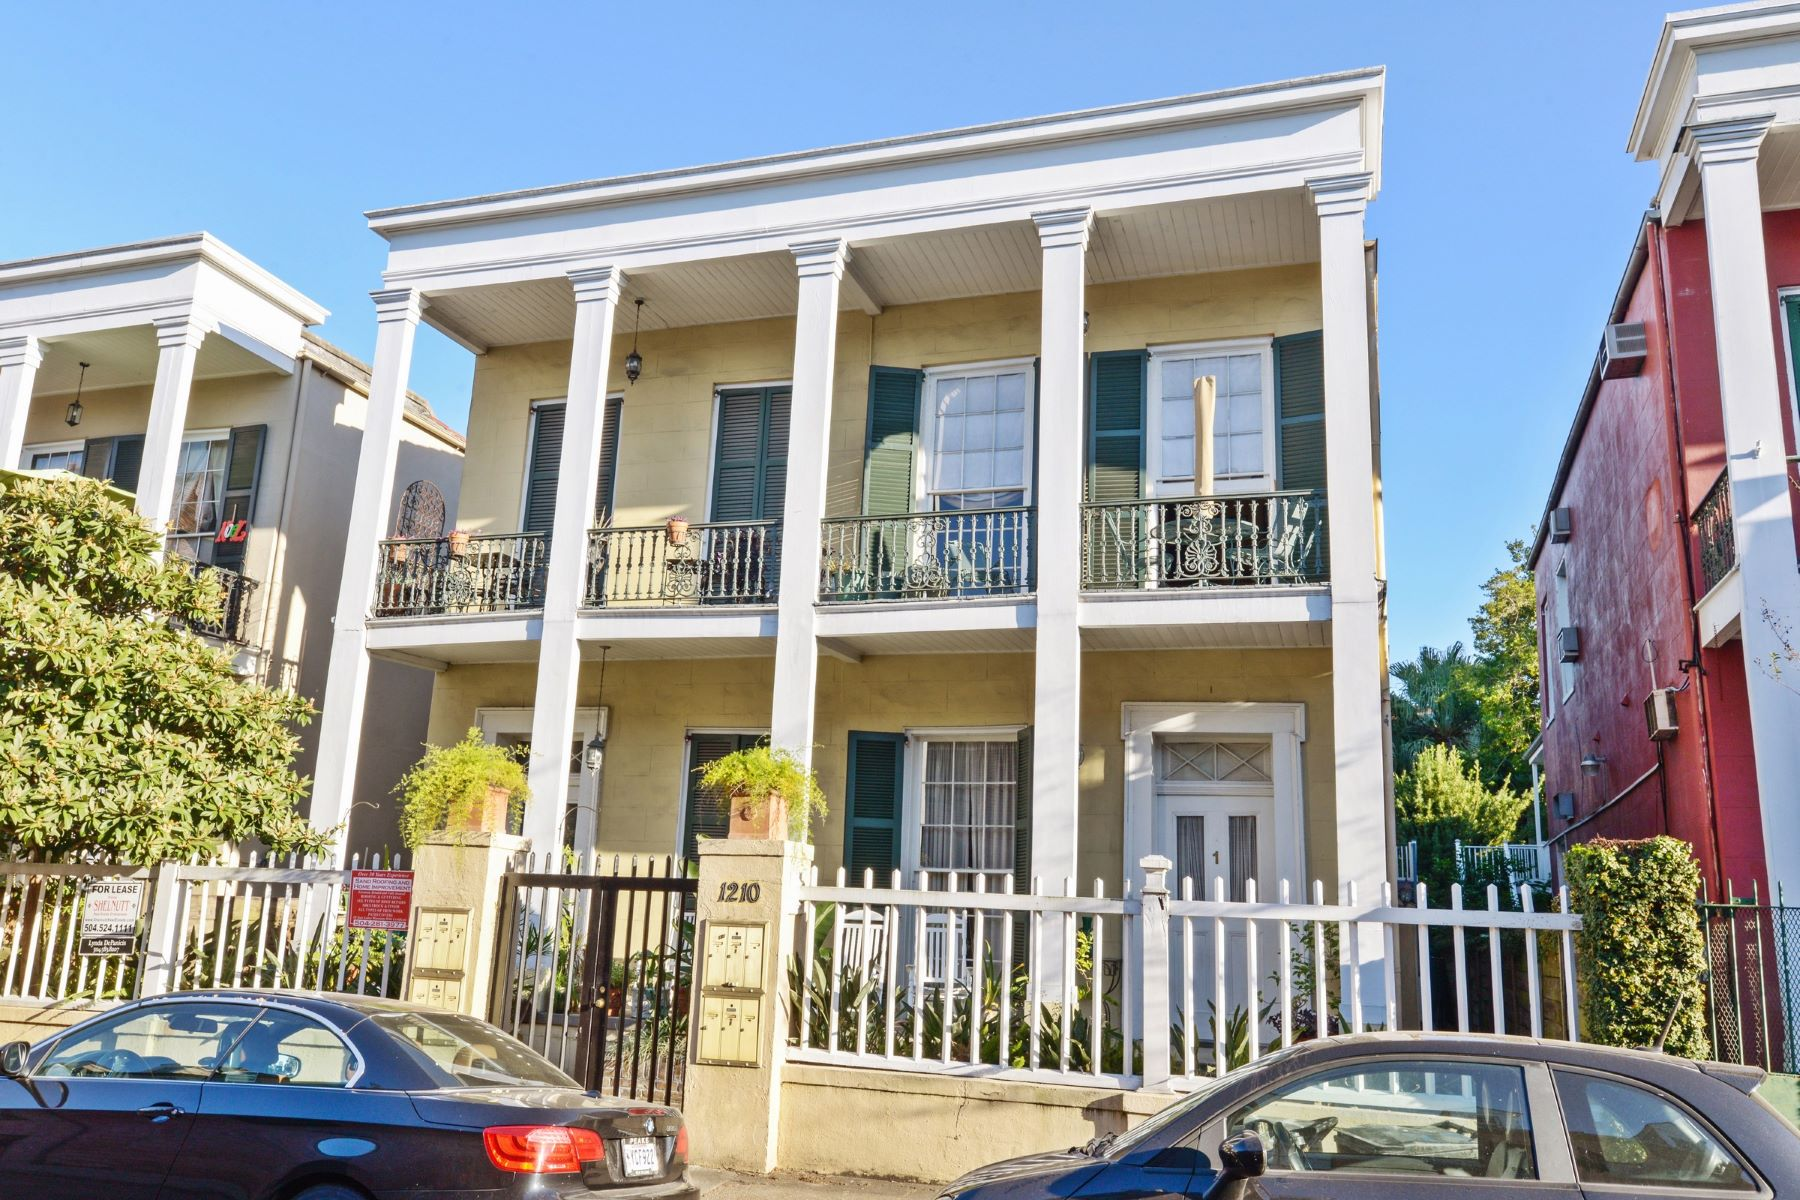 Condominium for Sale at 1210 Chartres Street, #5 1210 Chartres St # 5 New Orleans, Louisiana 70116 United States